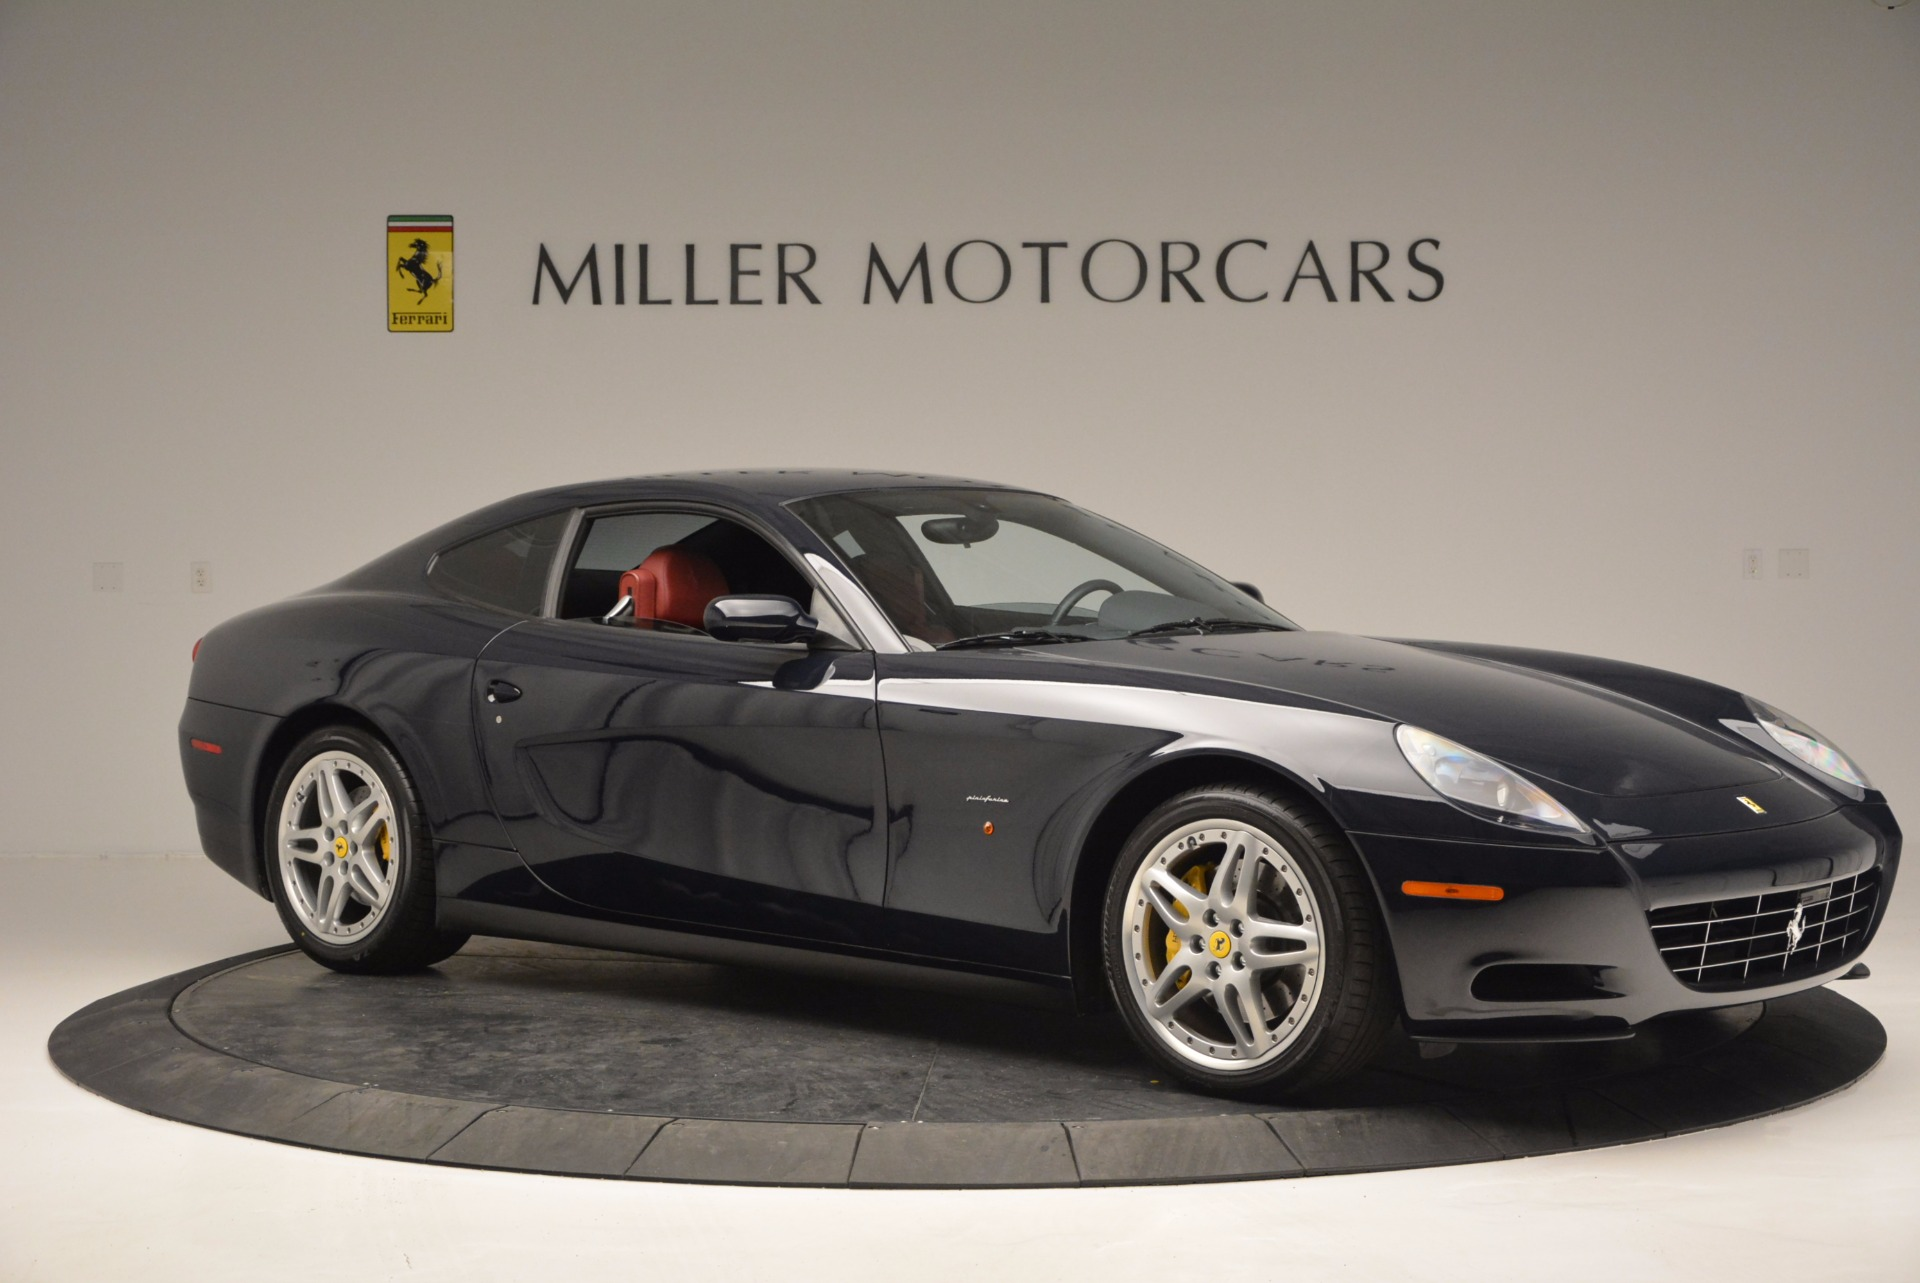 Used 2005 Ferrari 612 Scaglietti 6-Speed Manual For Sale In Greenwich, CT 854_p11